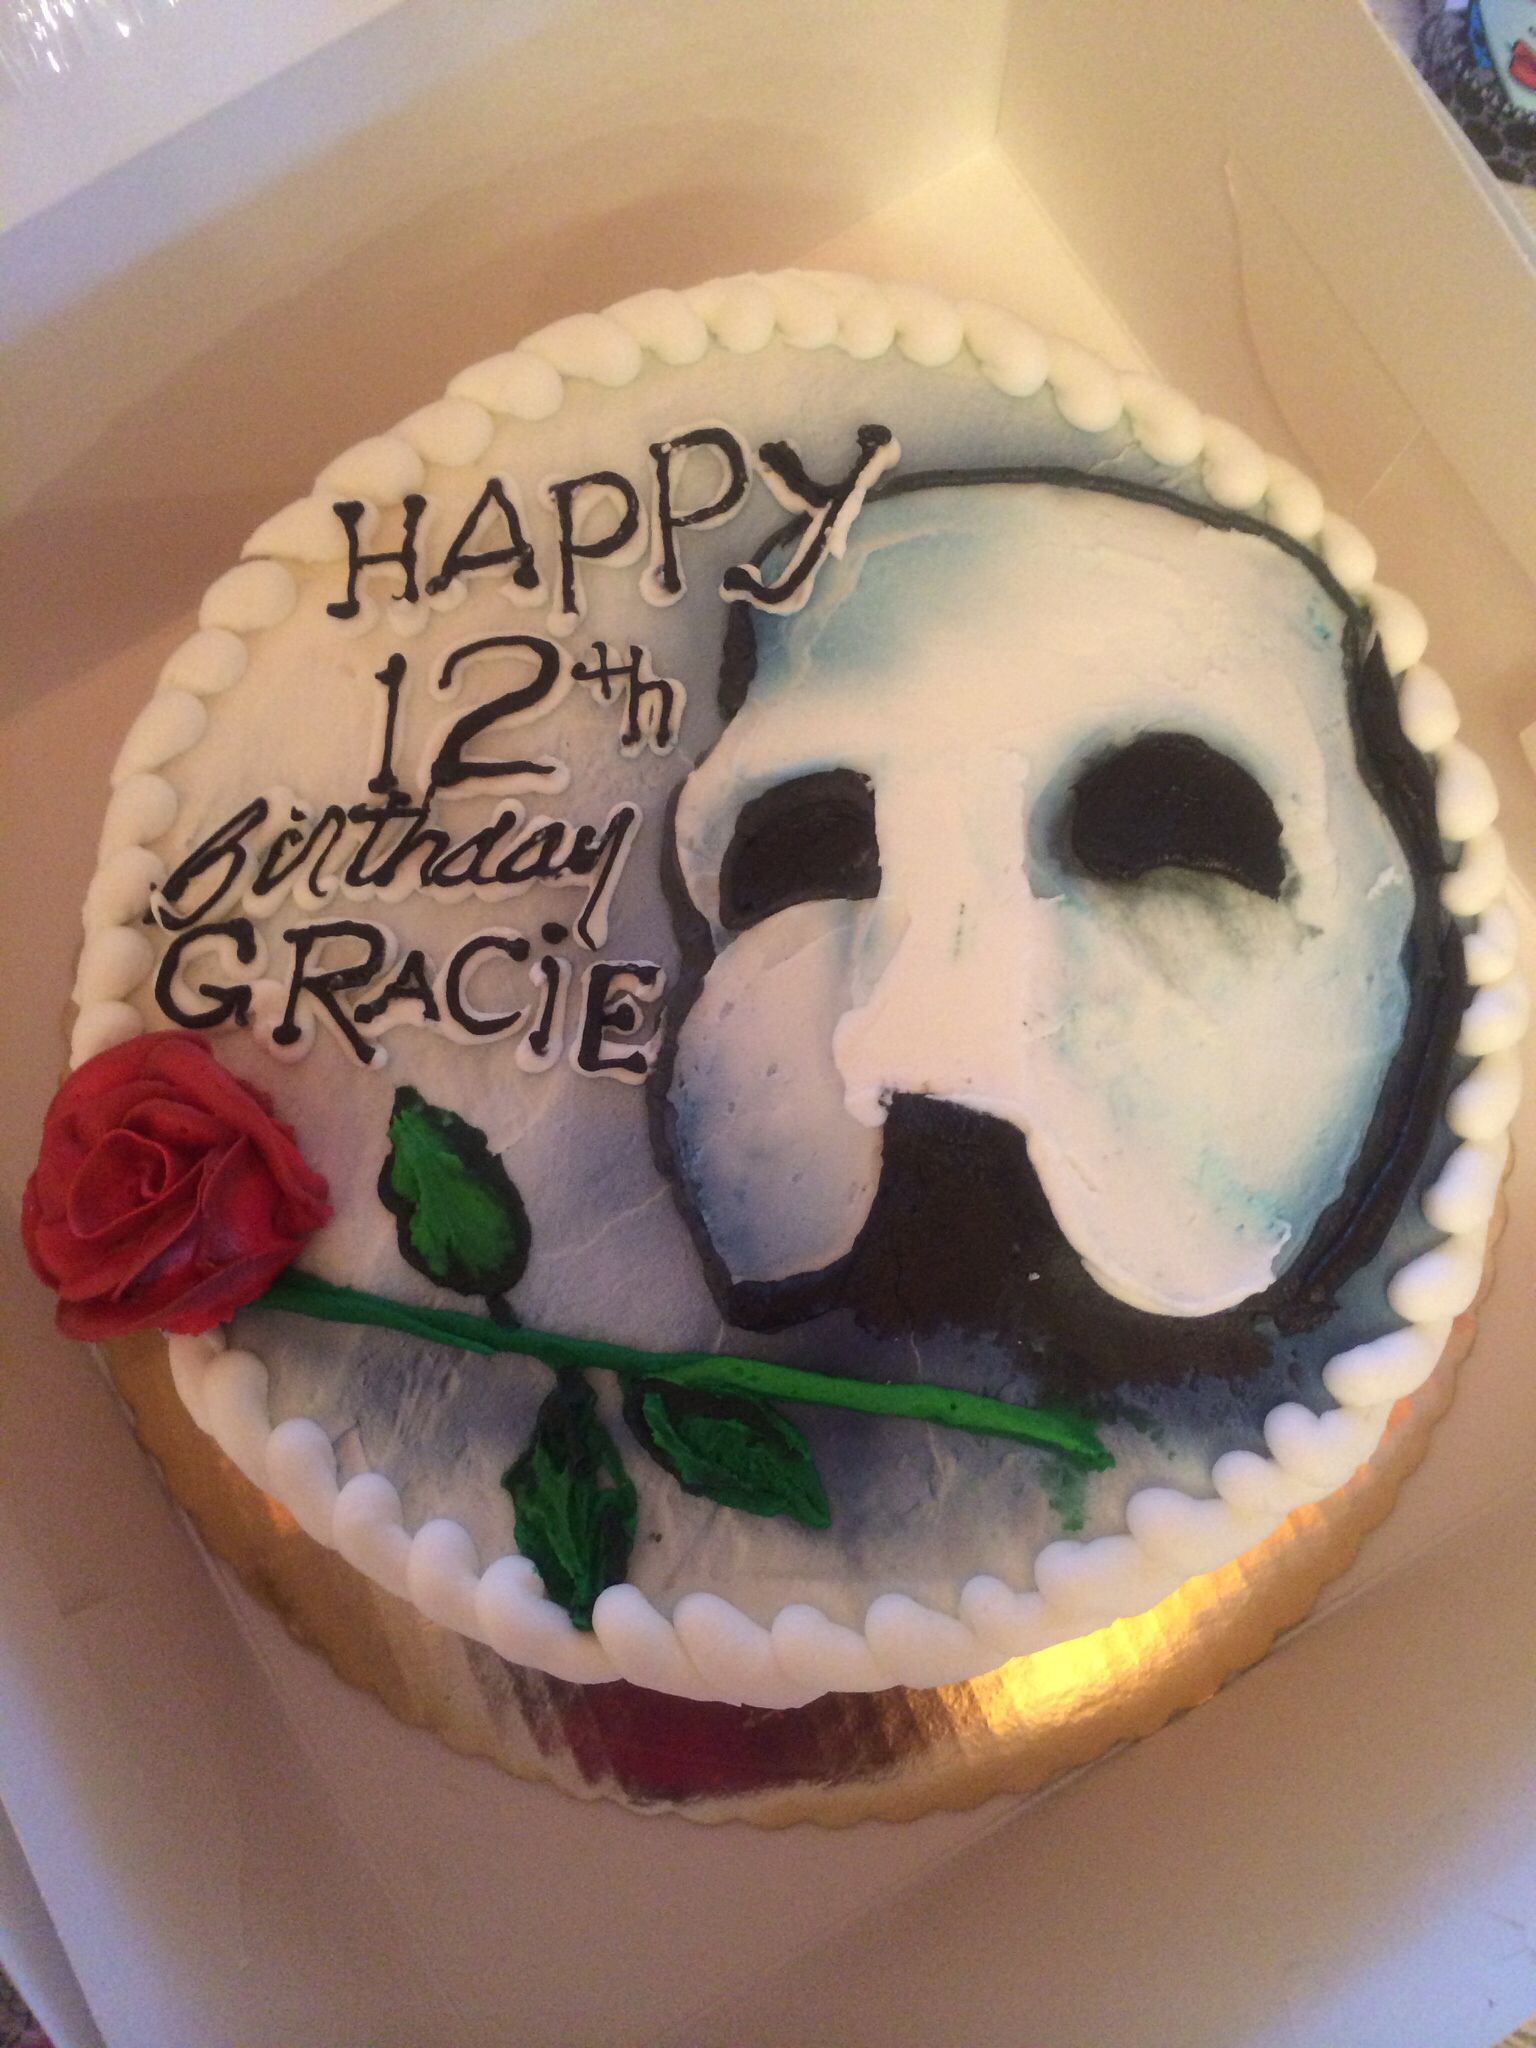 Awesome Cake For The Phantom Of Opera Birthday Party Made By Bankery In Skowhegan